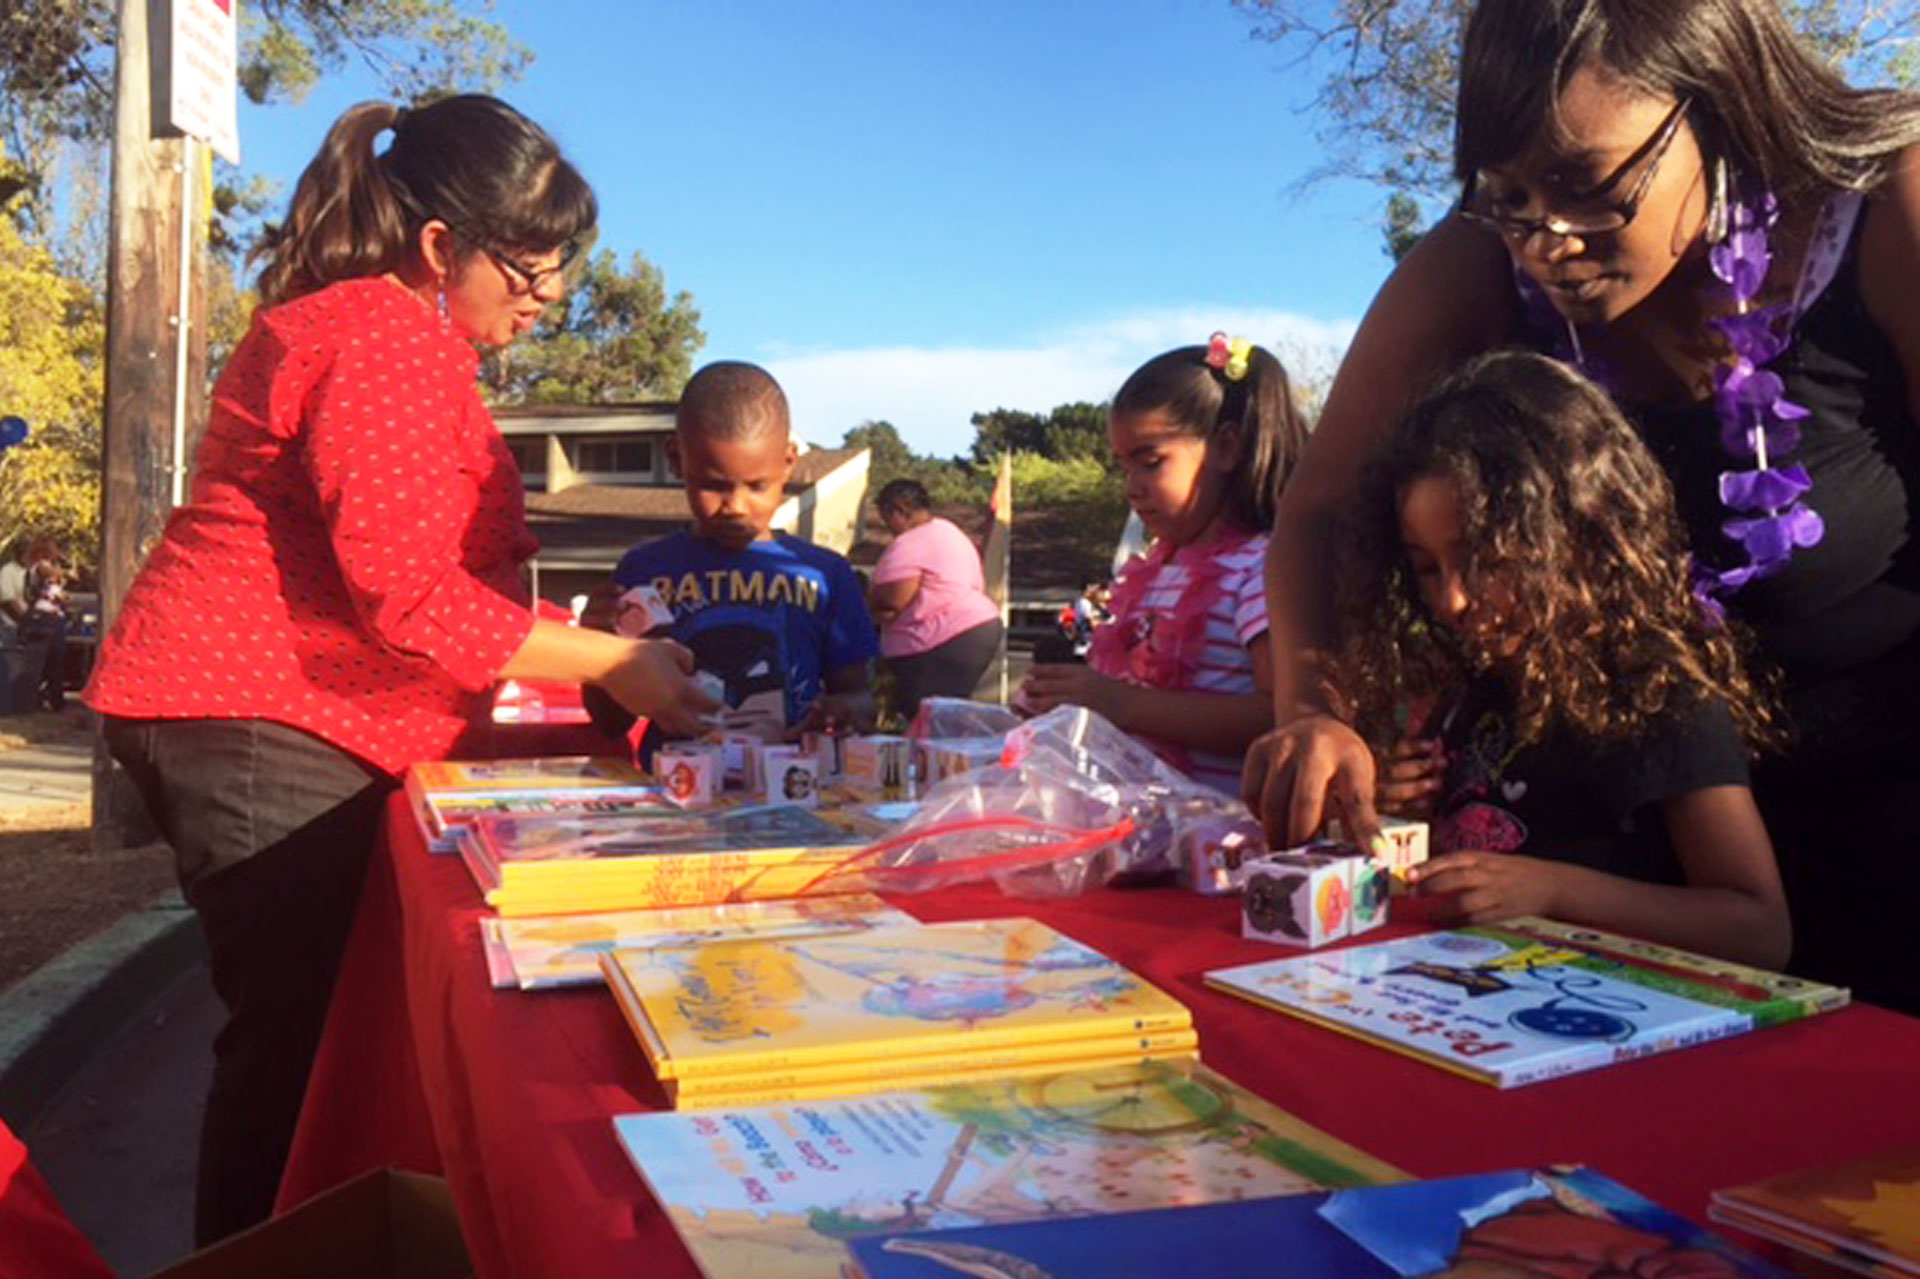 Children in Pinole take advantage of a free book drive designed to get kids reading.